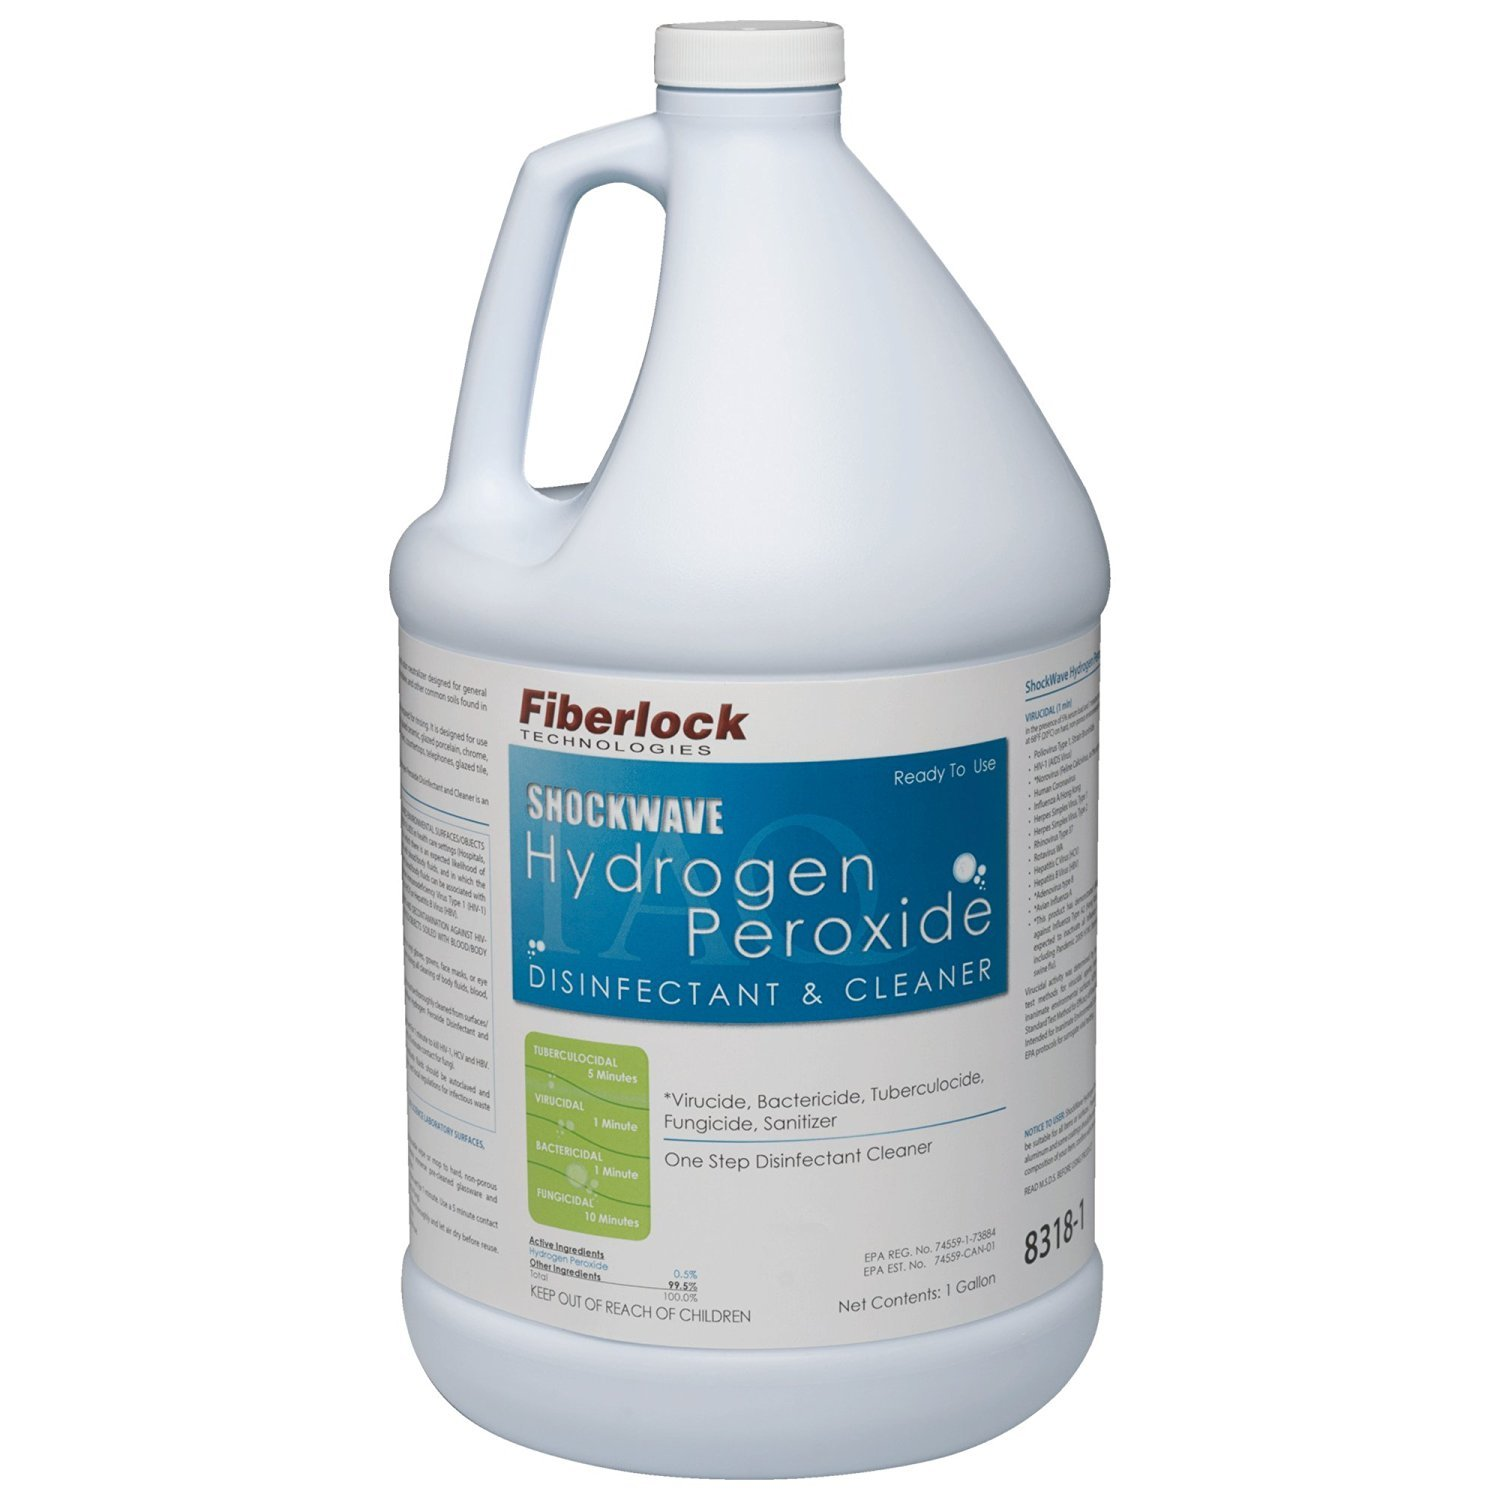 Fiberlock - Shockwave Hydrogen Peroxide - Disinfectant and Cleaner - 1 Gallon - 8318 for sale